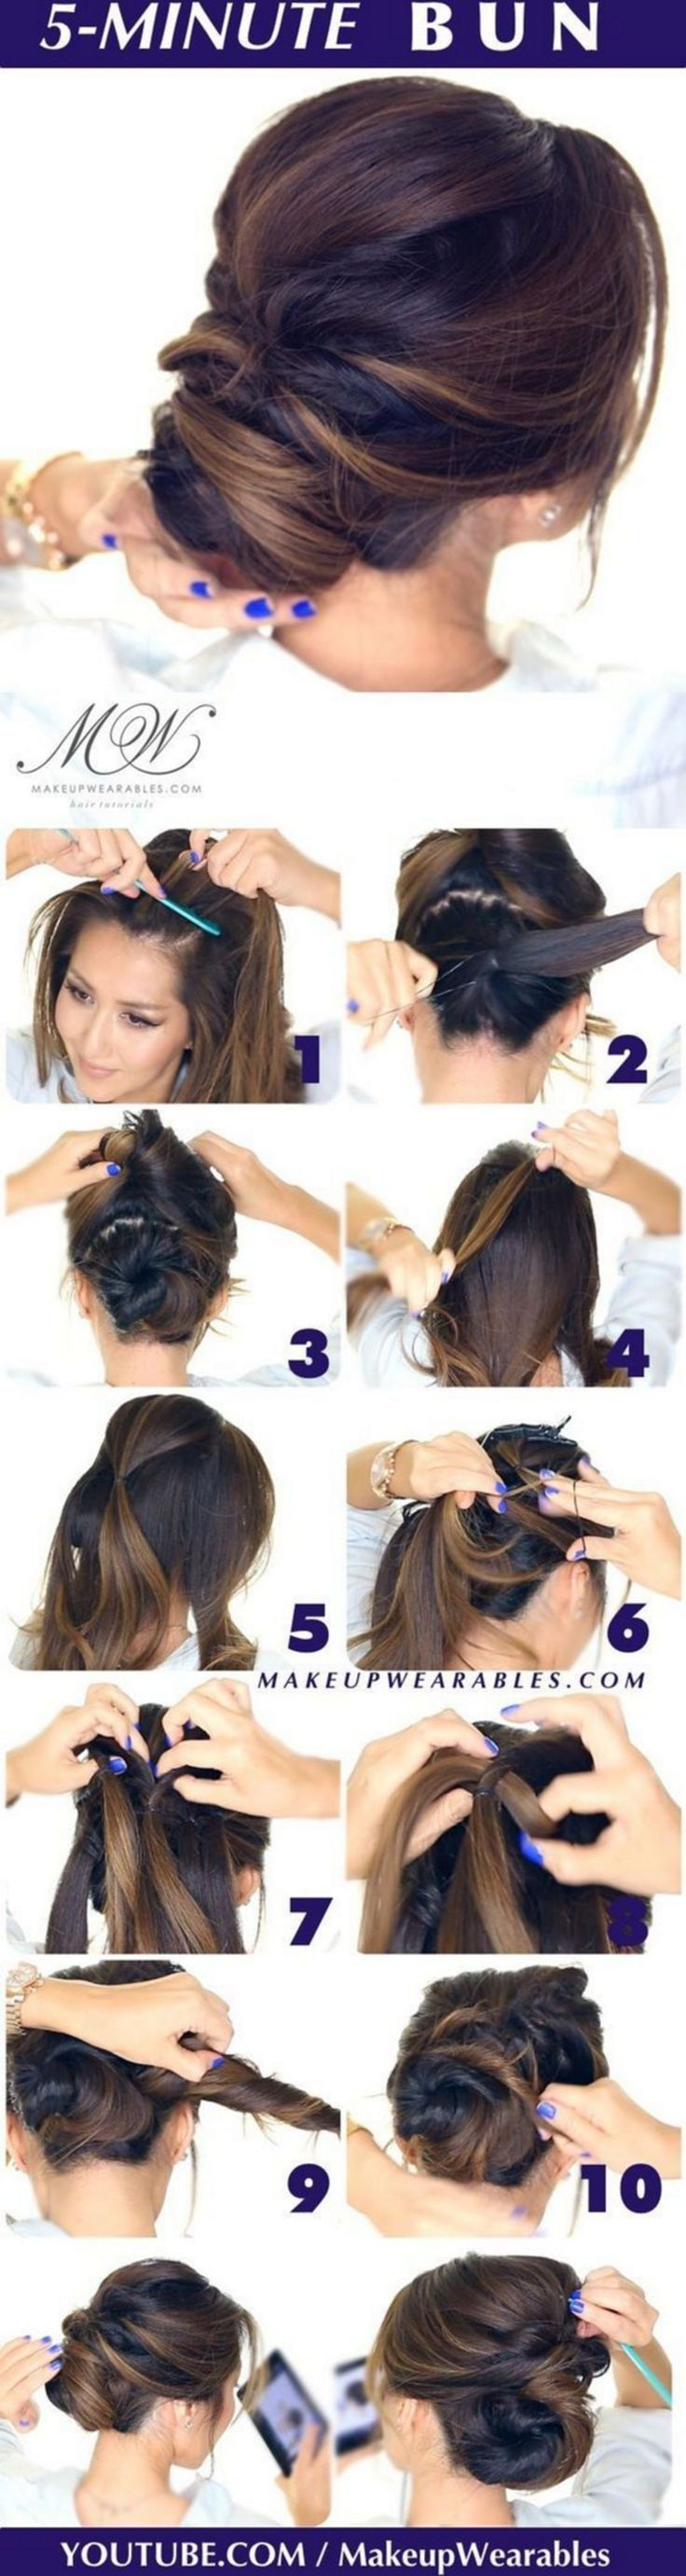 80+ Excellent And Super Easy Updos For Long Hair Inspirations montenr.com/...